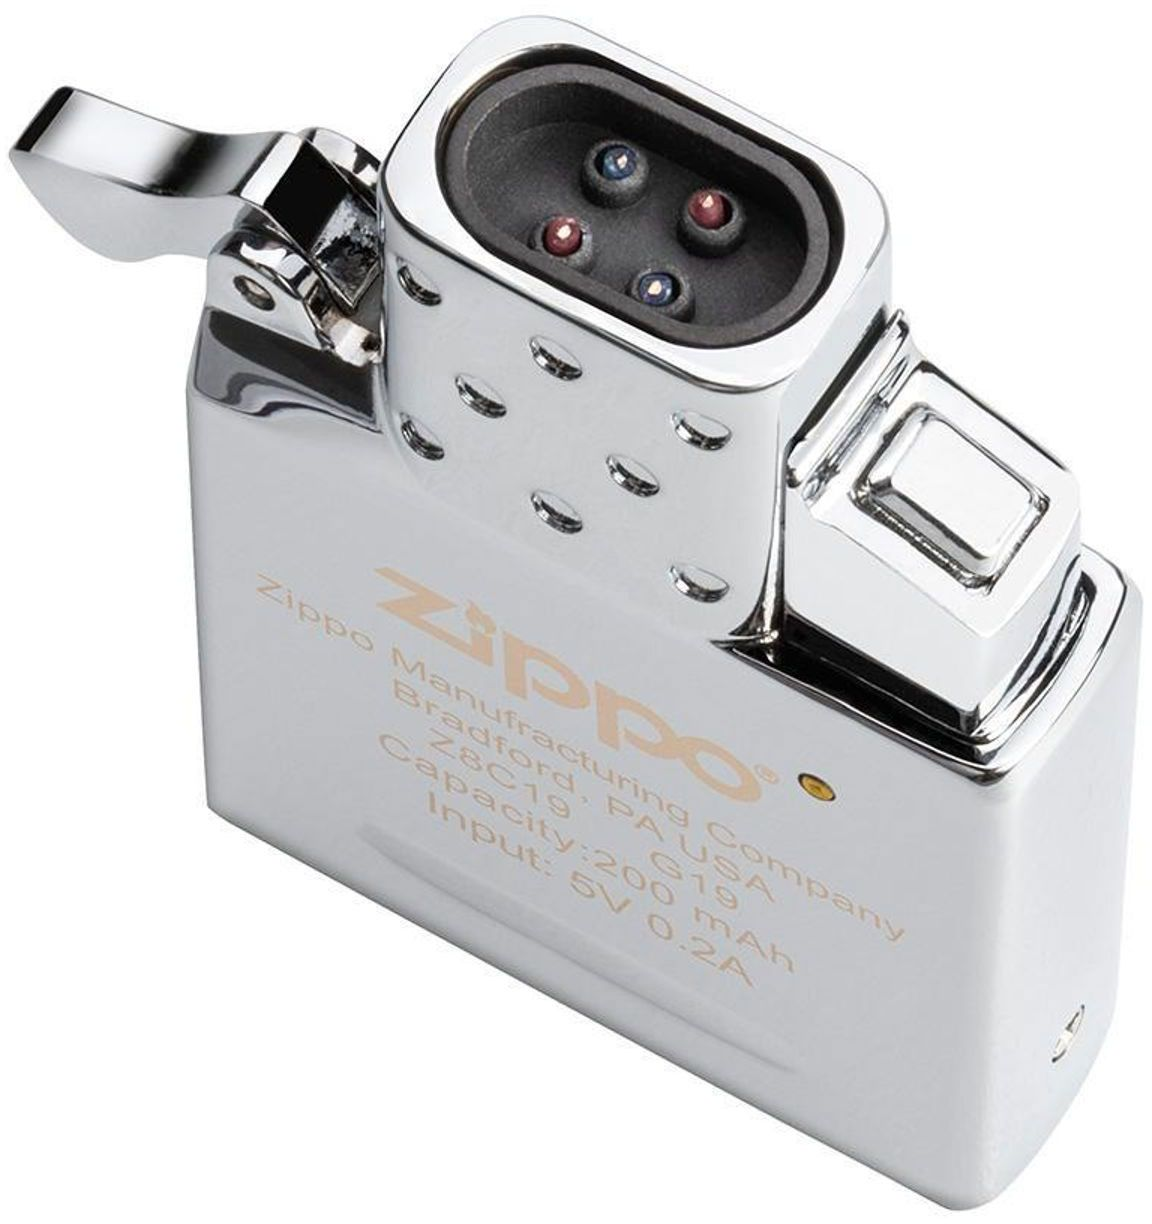 Zippo Double Beam Arc Lighter Insert, Rechargeable